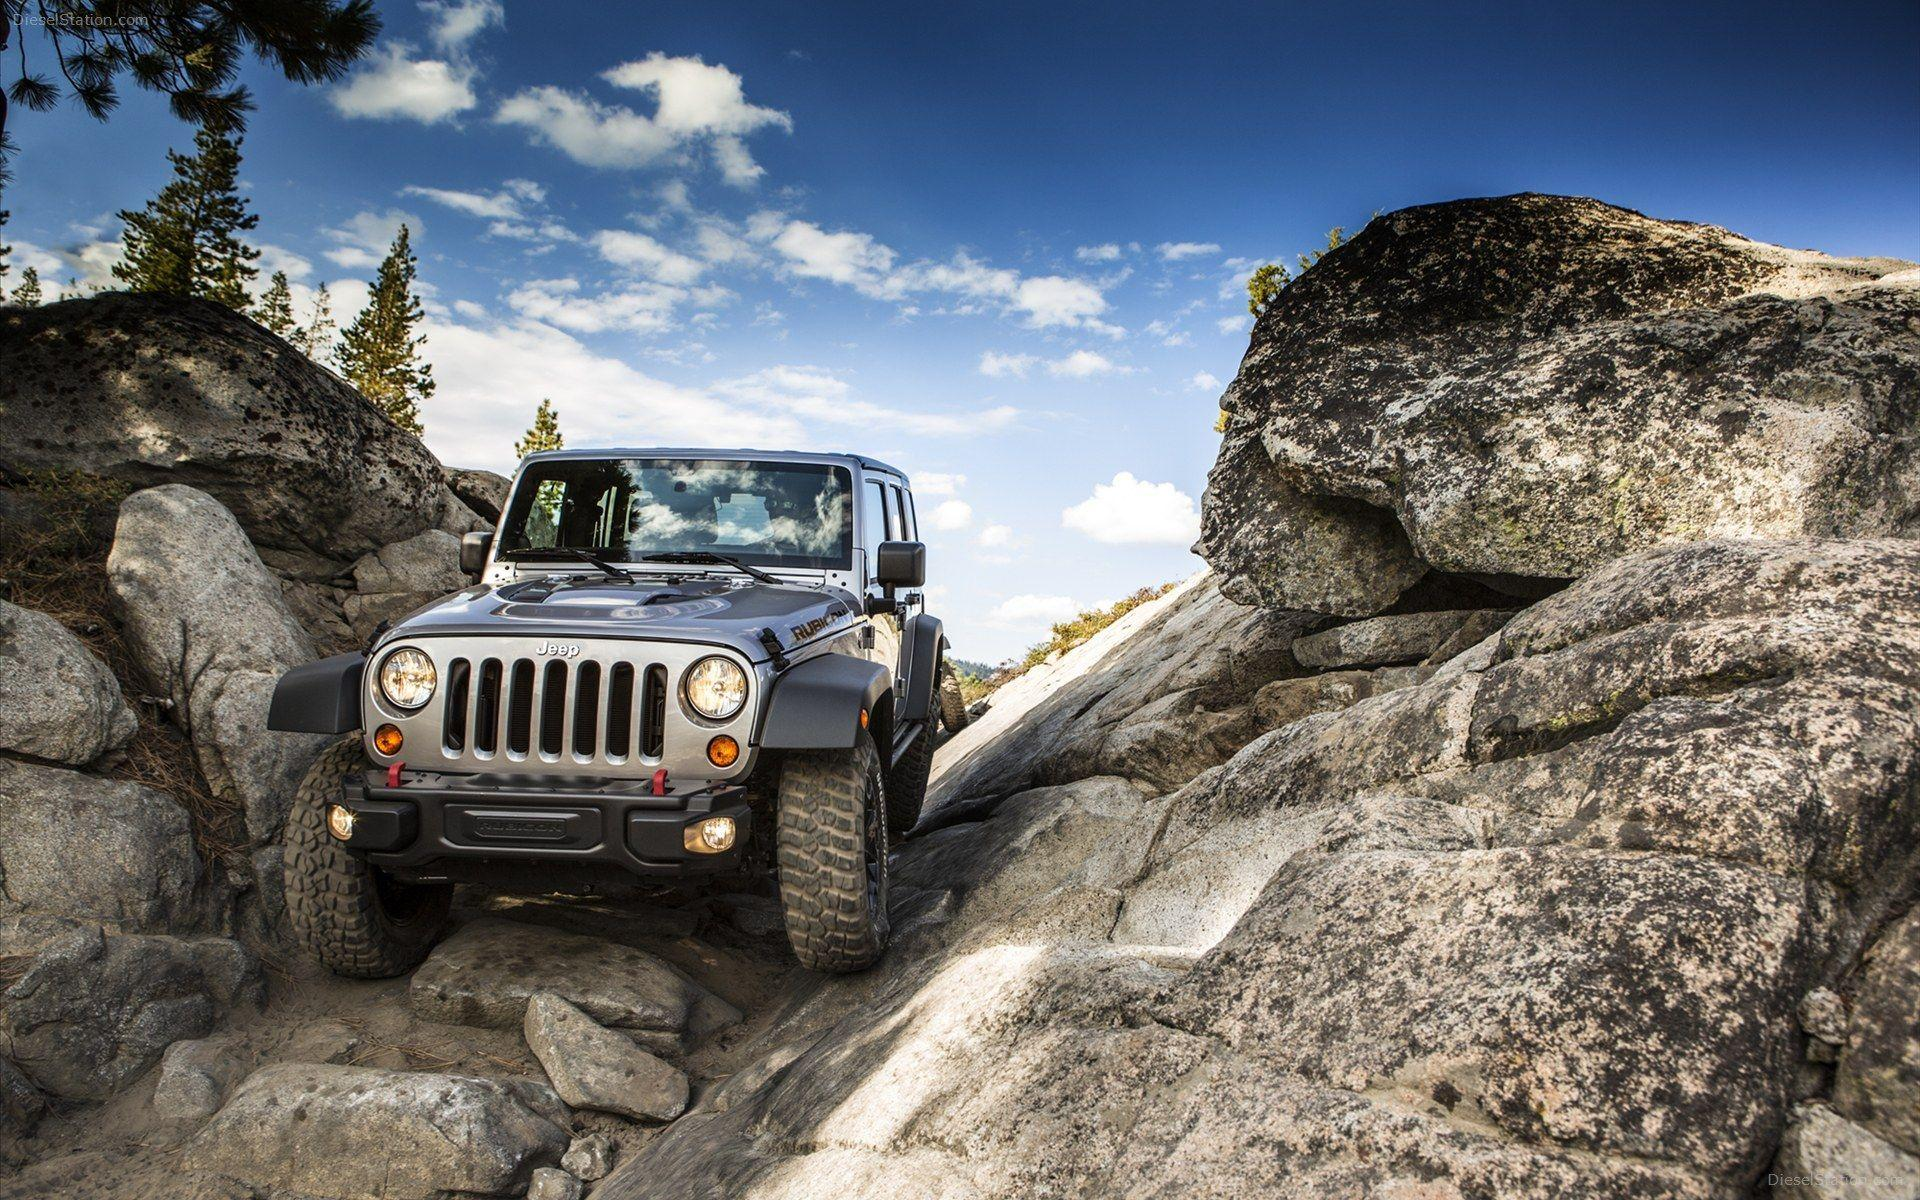 Our New Jeep Wrangler 2018 Unlimited And Pickup Preview Renderings furthermore 1955 Jeep Willys Cj 5 further Used 2008 Jeep Wrangler Jk Review And Sale further Watch besides Jeep Decals. on jeep wrangler jk